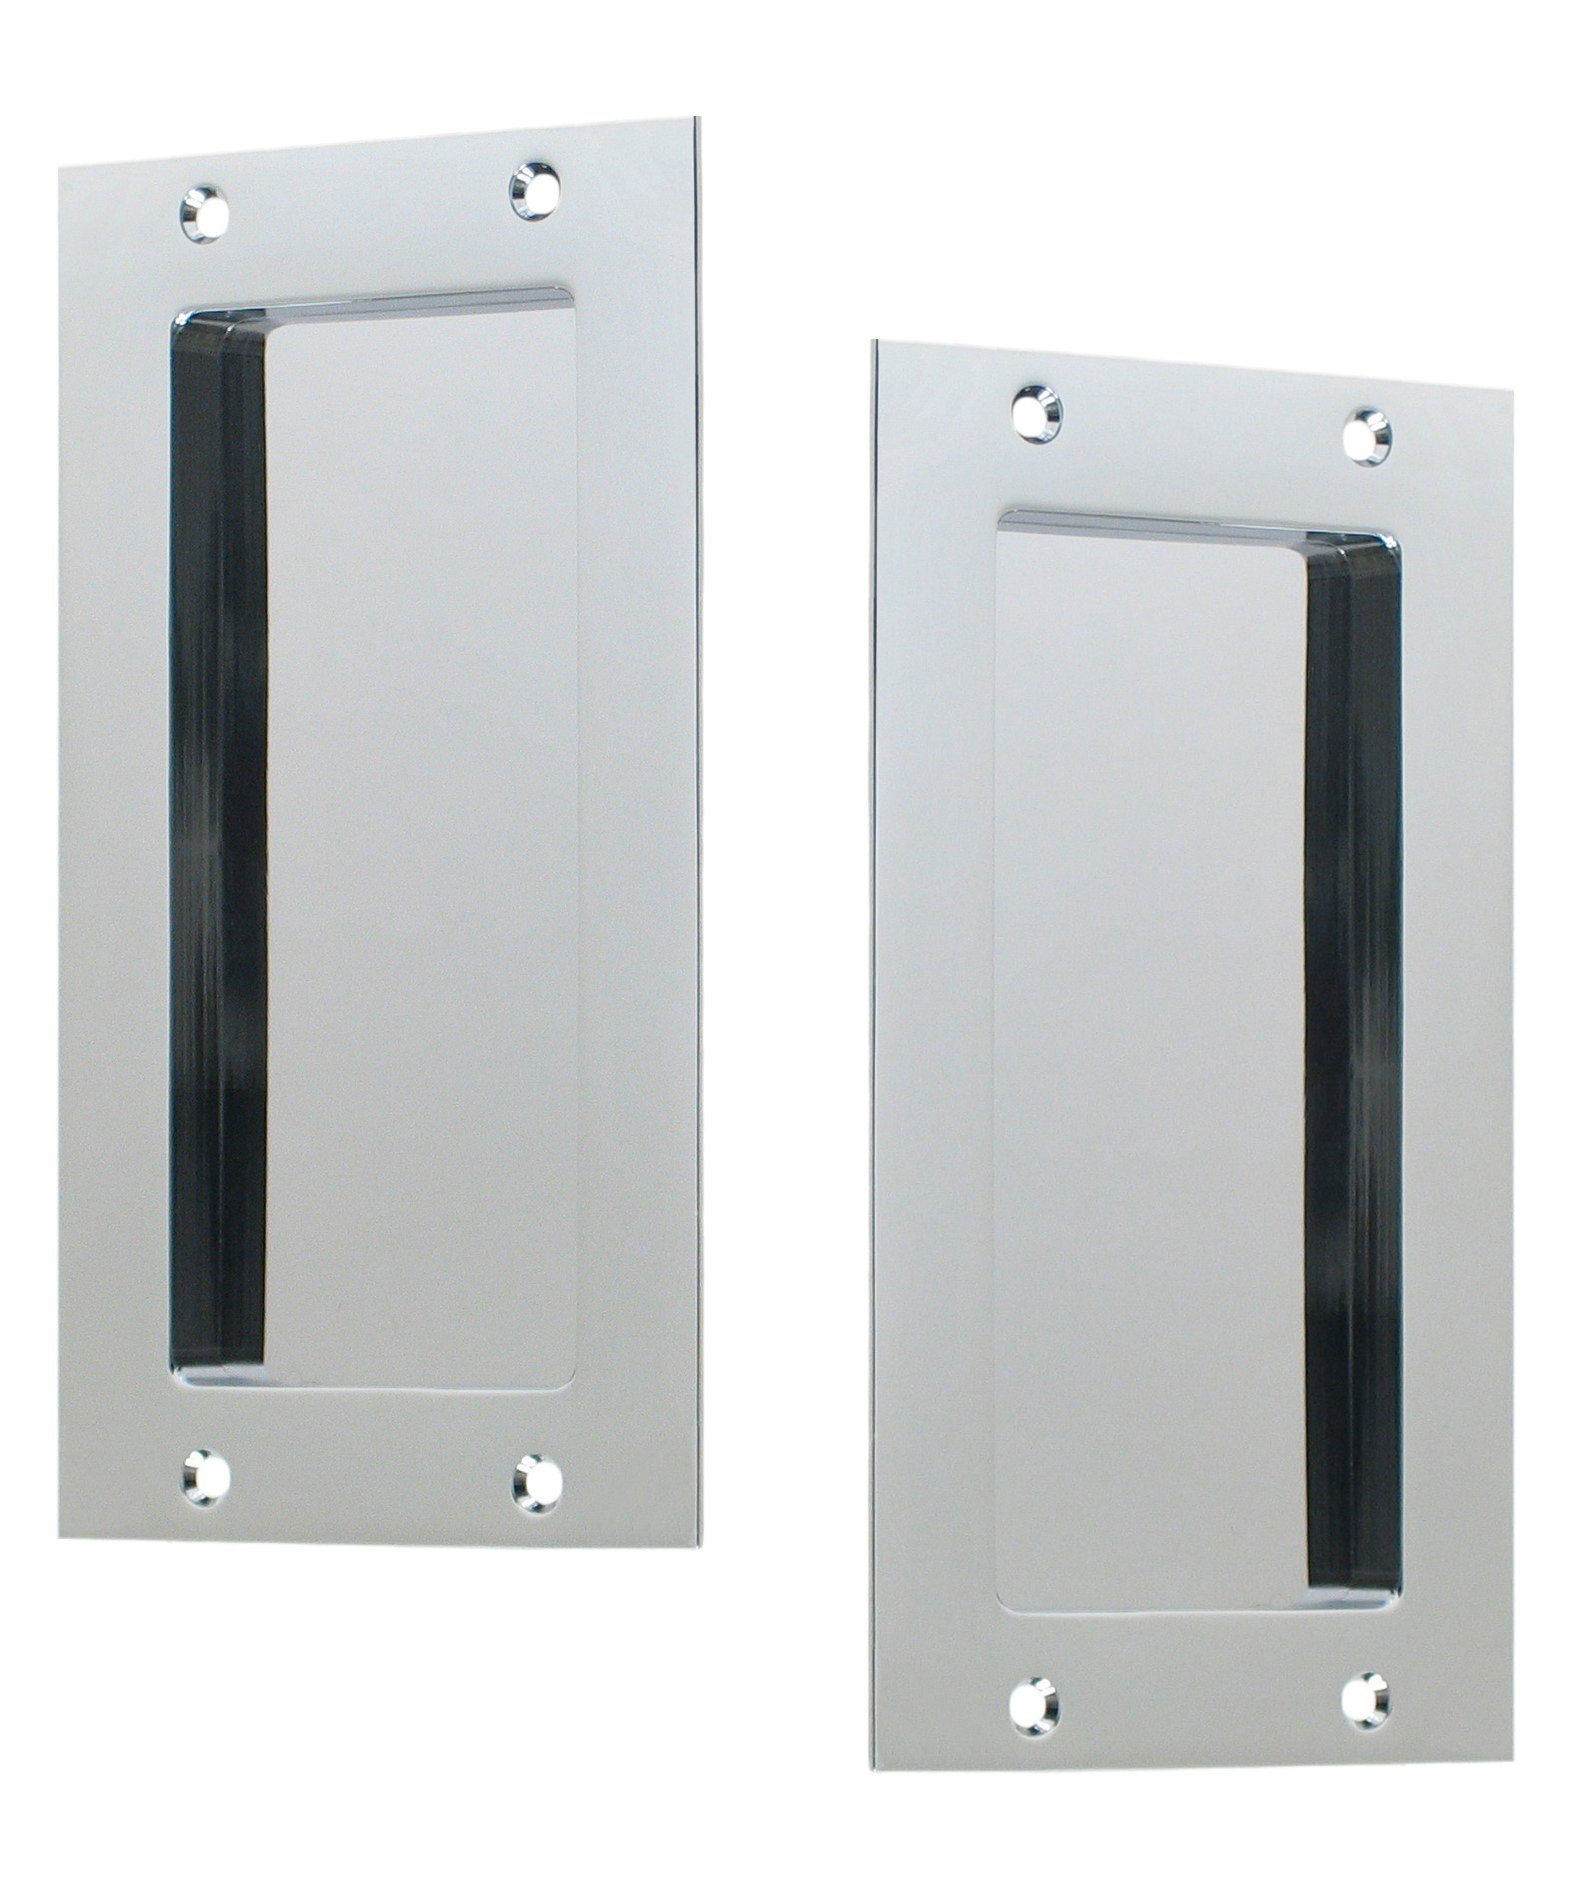 Anacapa by FPL - Solid Brass Modern Pocket Door Hardware in Passage - Hall / Closet Function - Polished Chrome